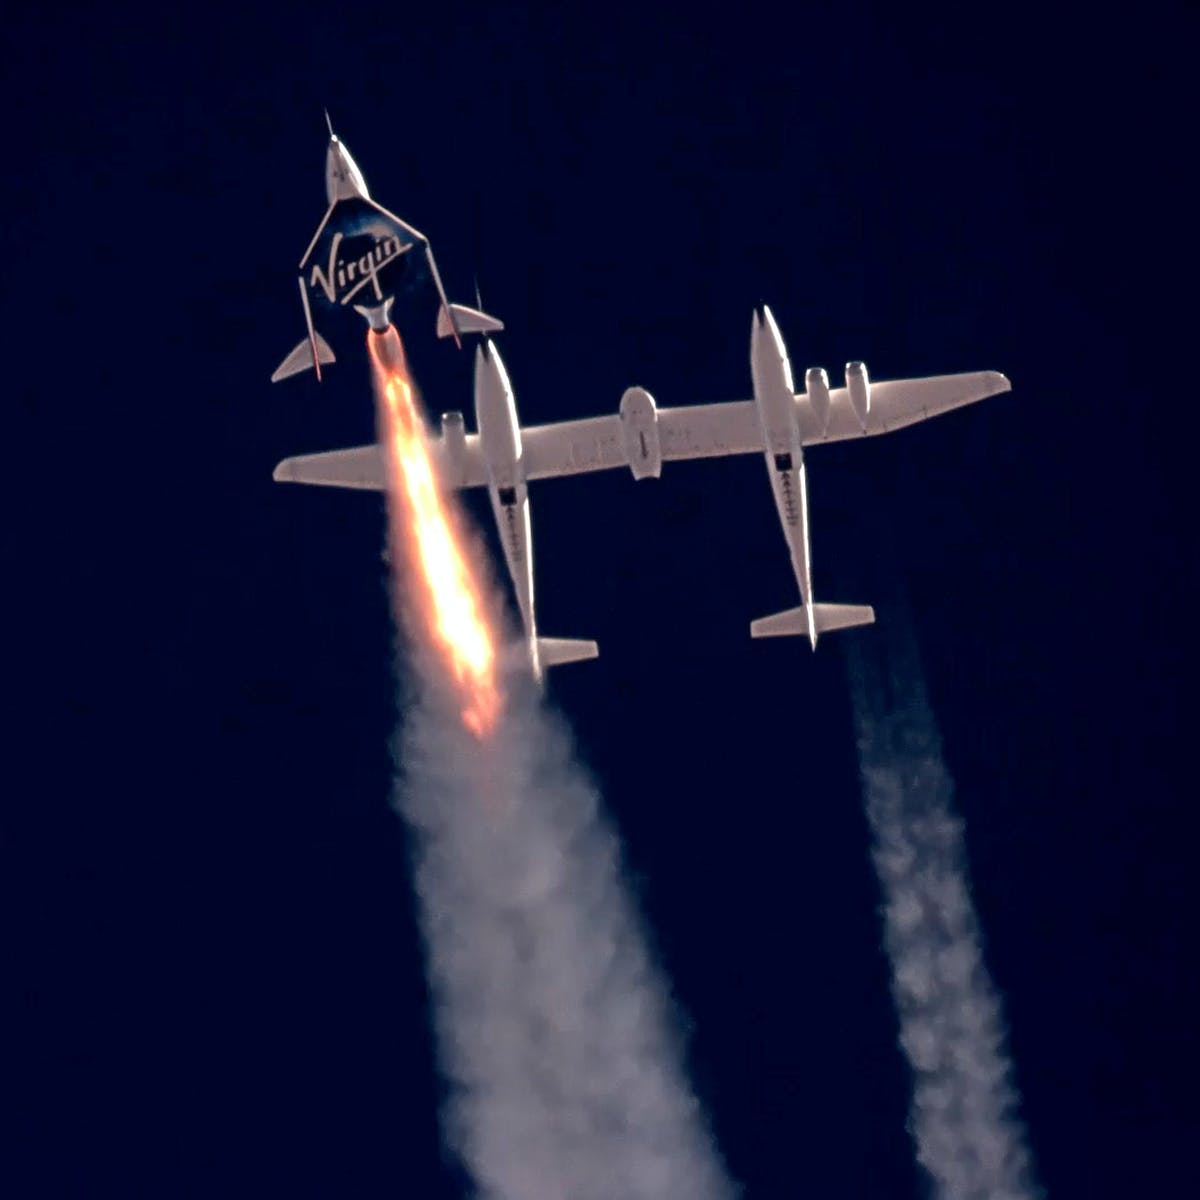 Featured image: Virgin Galactic and Blue Origin: can they be more than 'space' joyrides formillionaires?